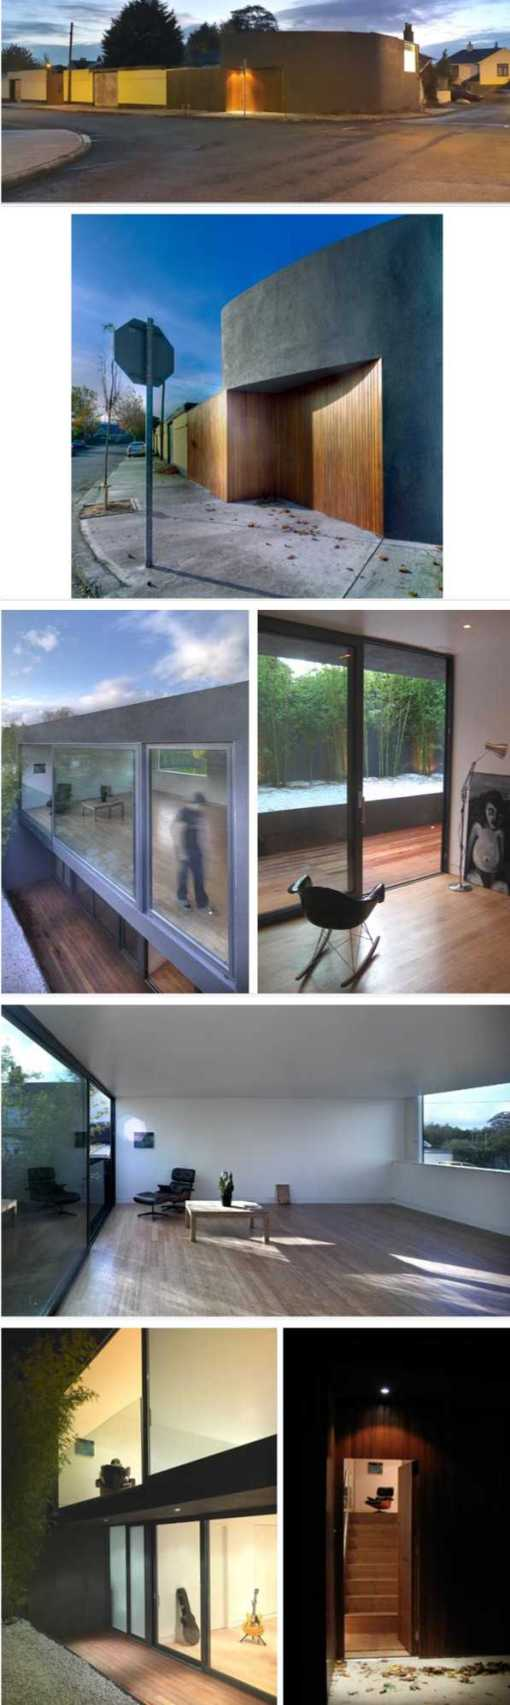 Invisible House in Rathfarnham, Ireland by Odos Architects - No48A is anything but | Modern House Designs